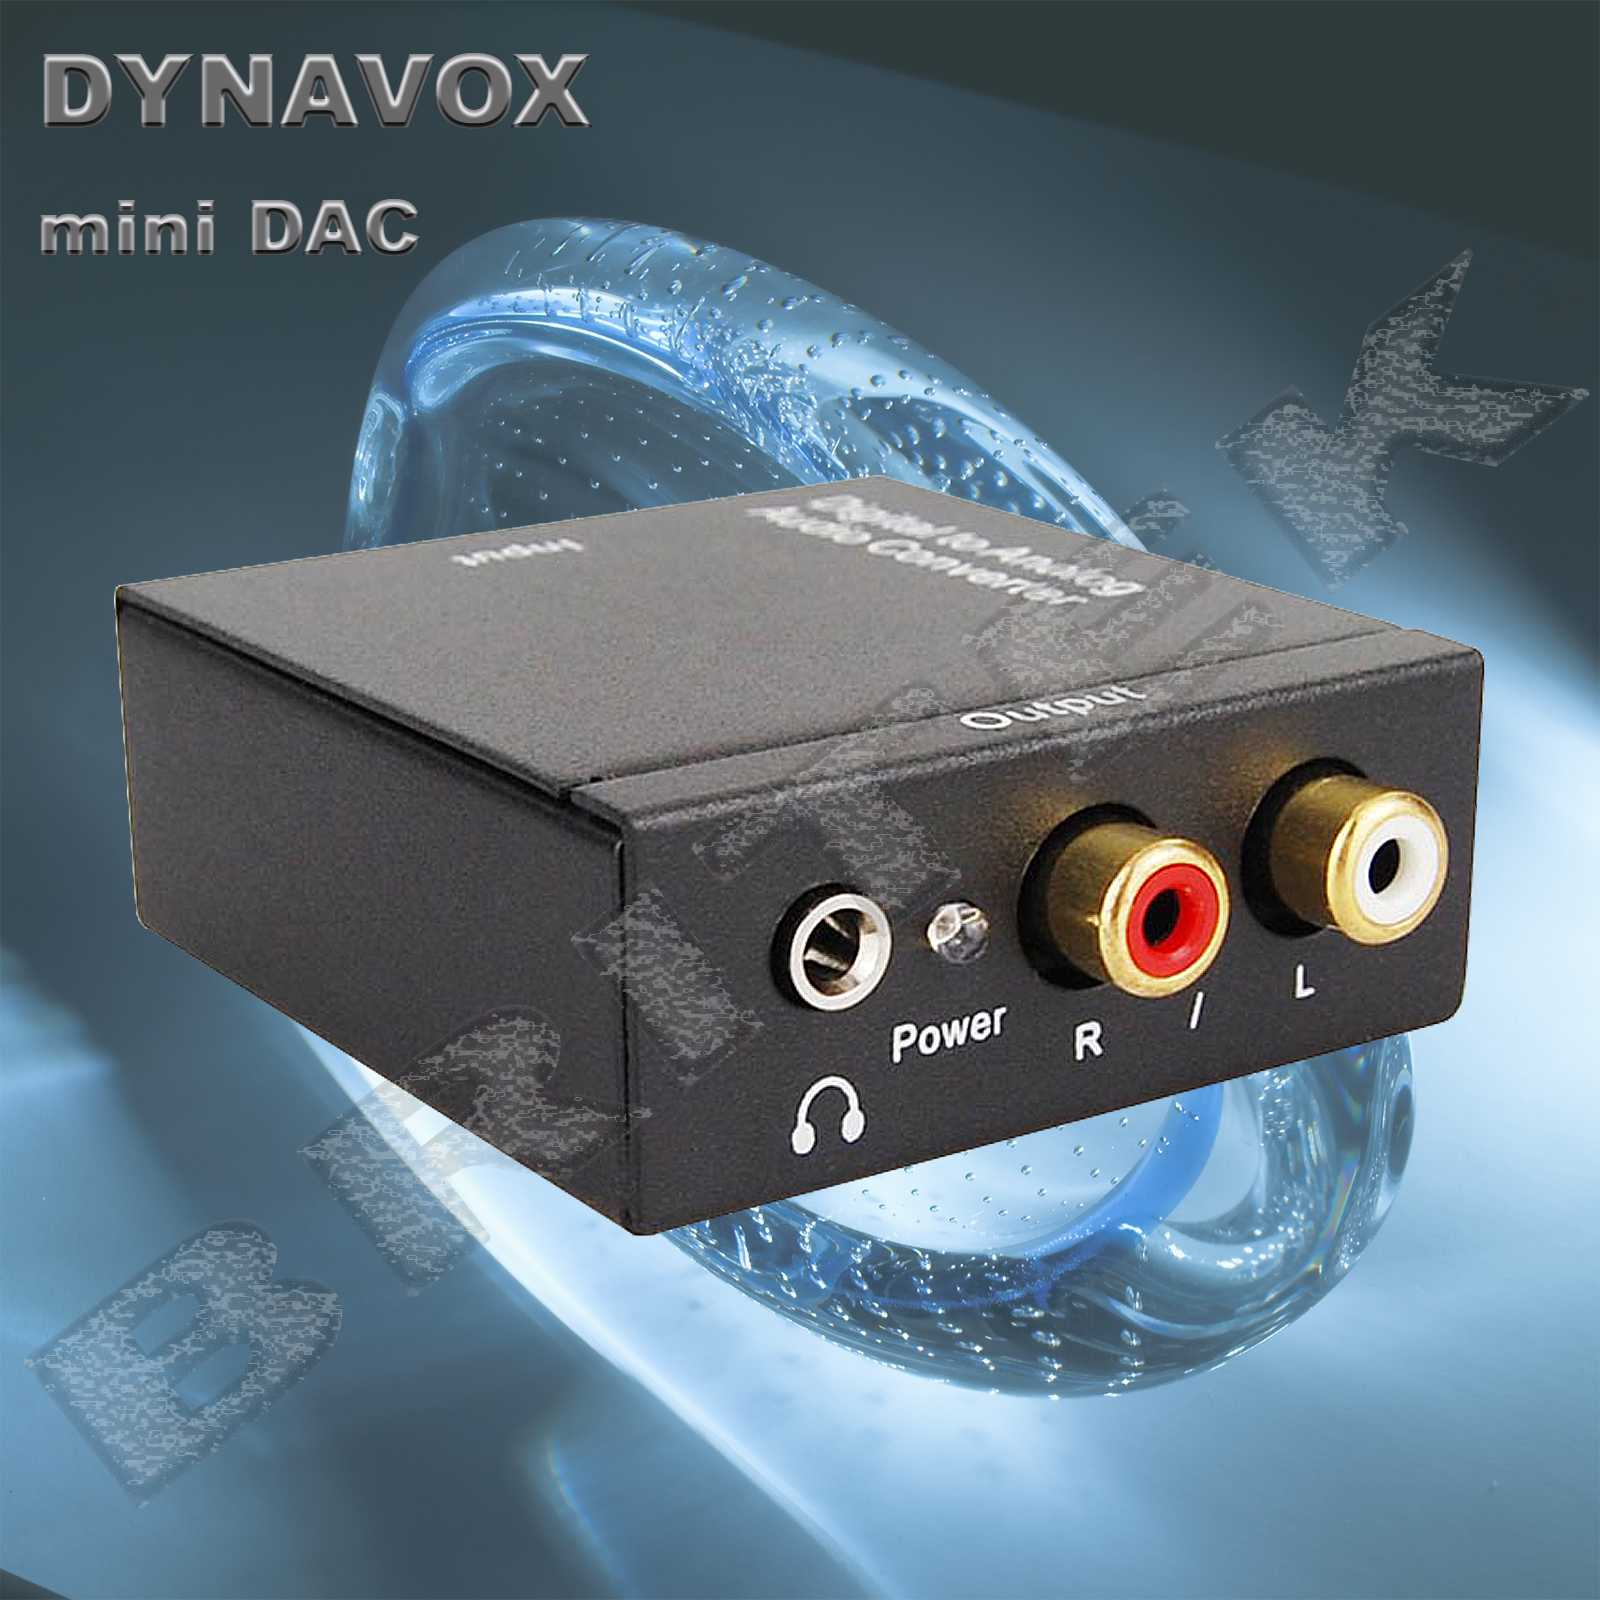 DYNAVOX-MINI DAC